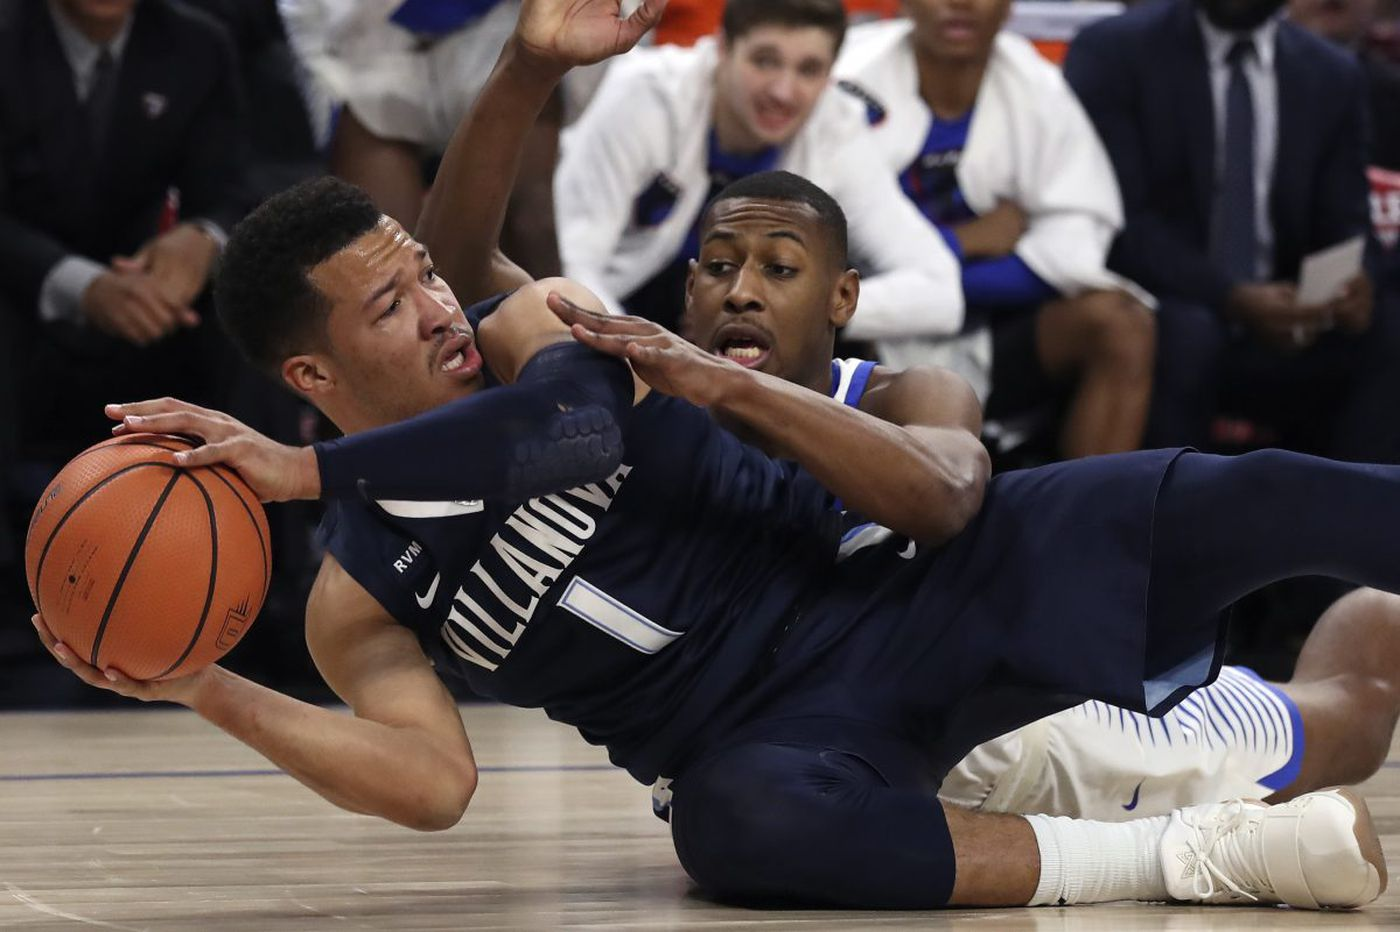 Jalen Brunson scores 16 points in homecoming as Villanova burns DePaul in Big East opener